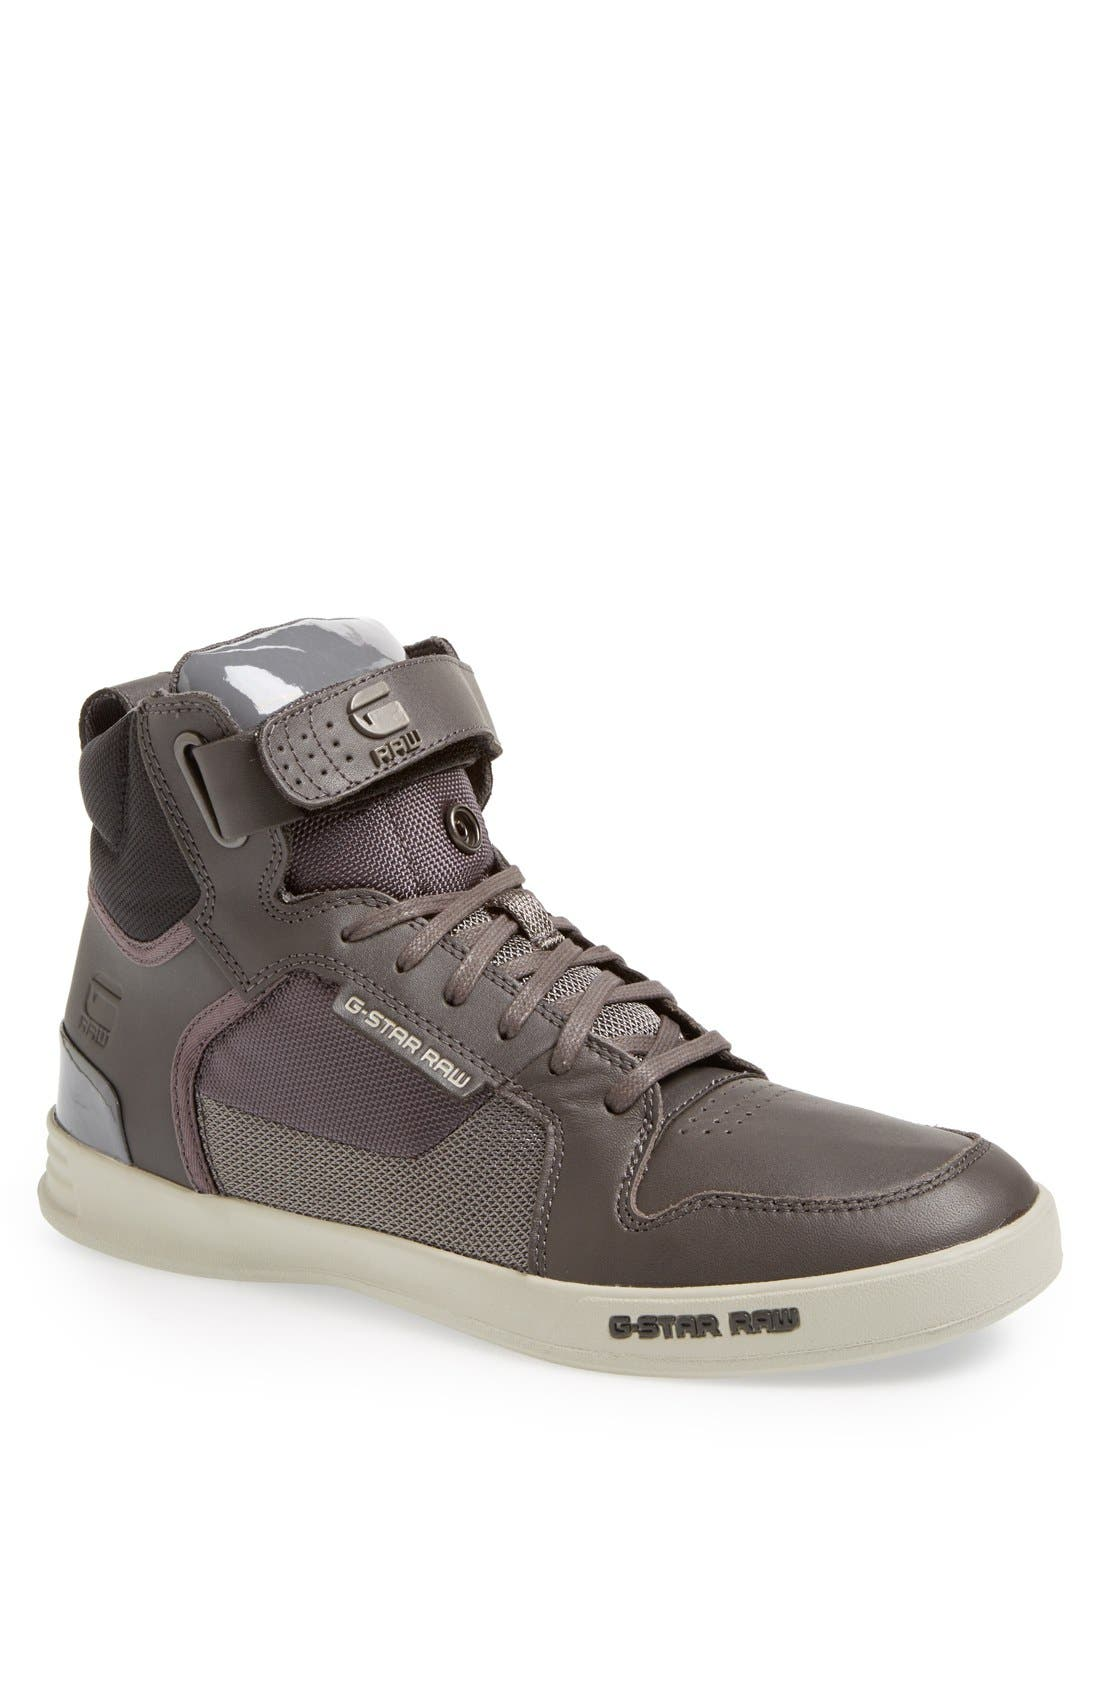 Main Image - G-Star Raw 'Yard Bullion' Sneaker (Men)